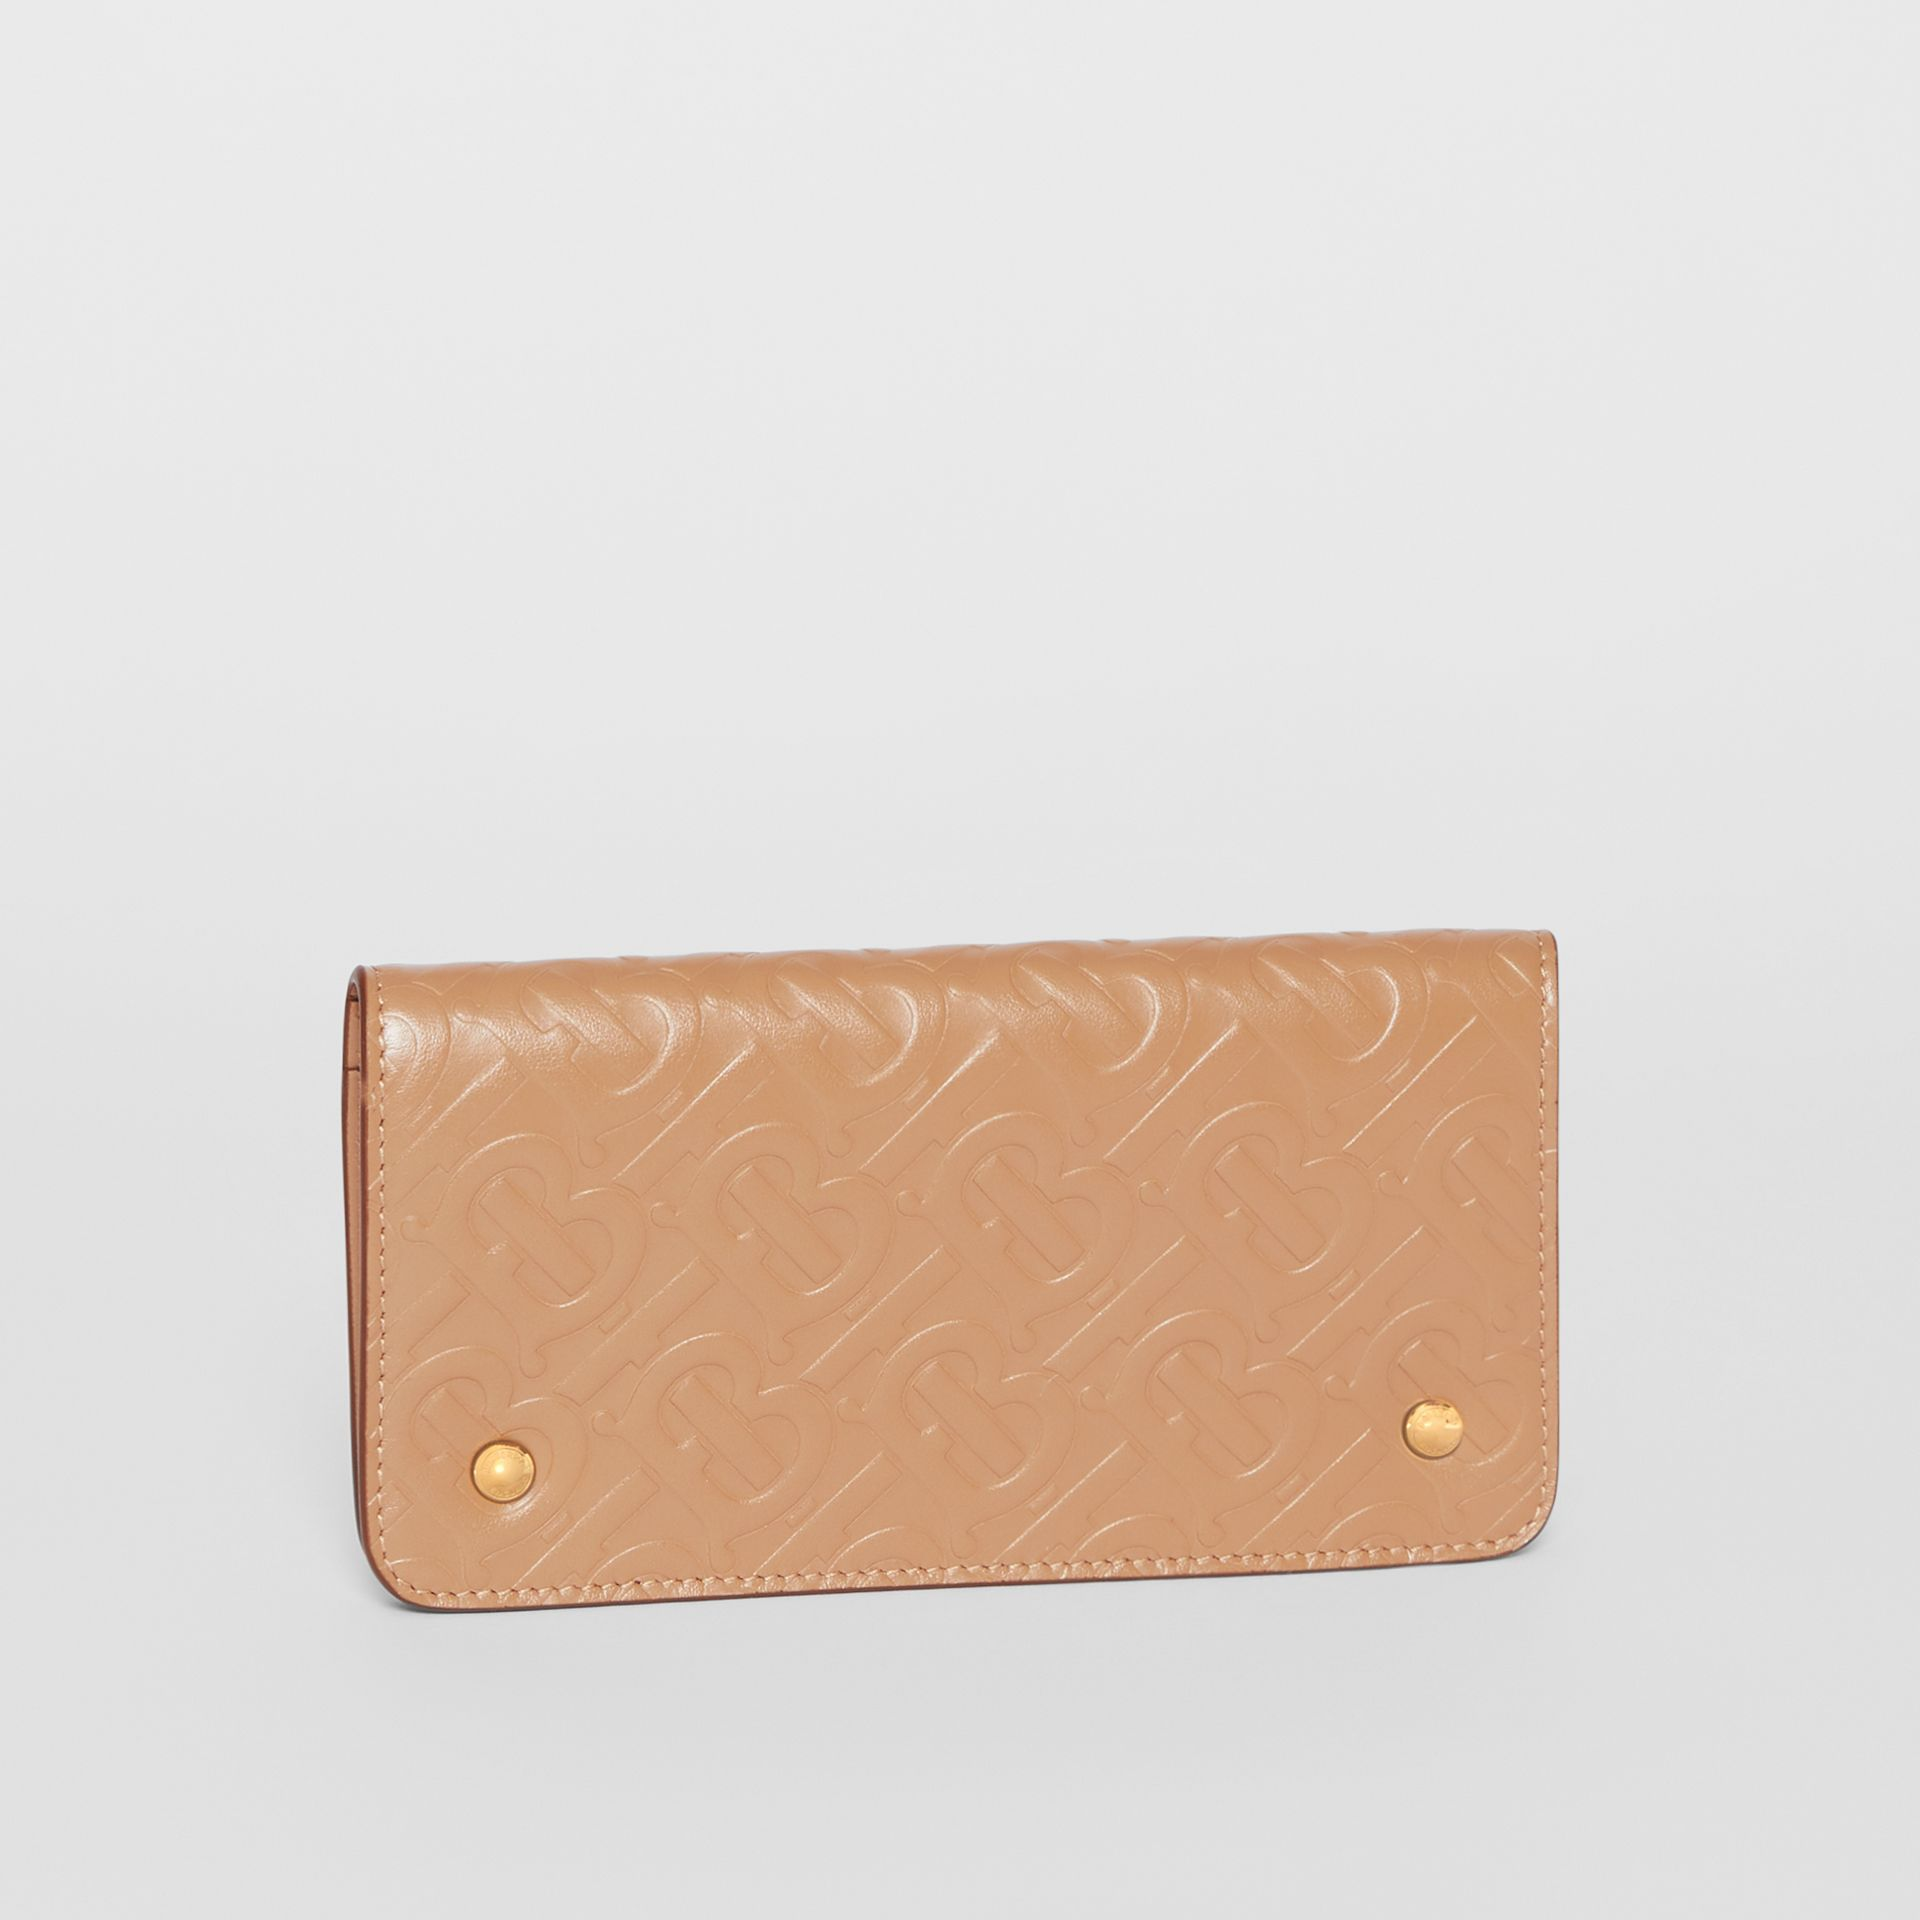 Monogram Leather Phone Wallet in Light Camel | Burberry Australia - gallery image 4